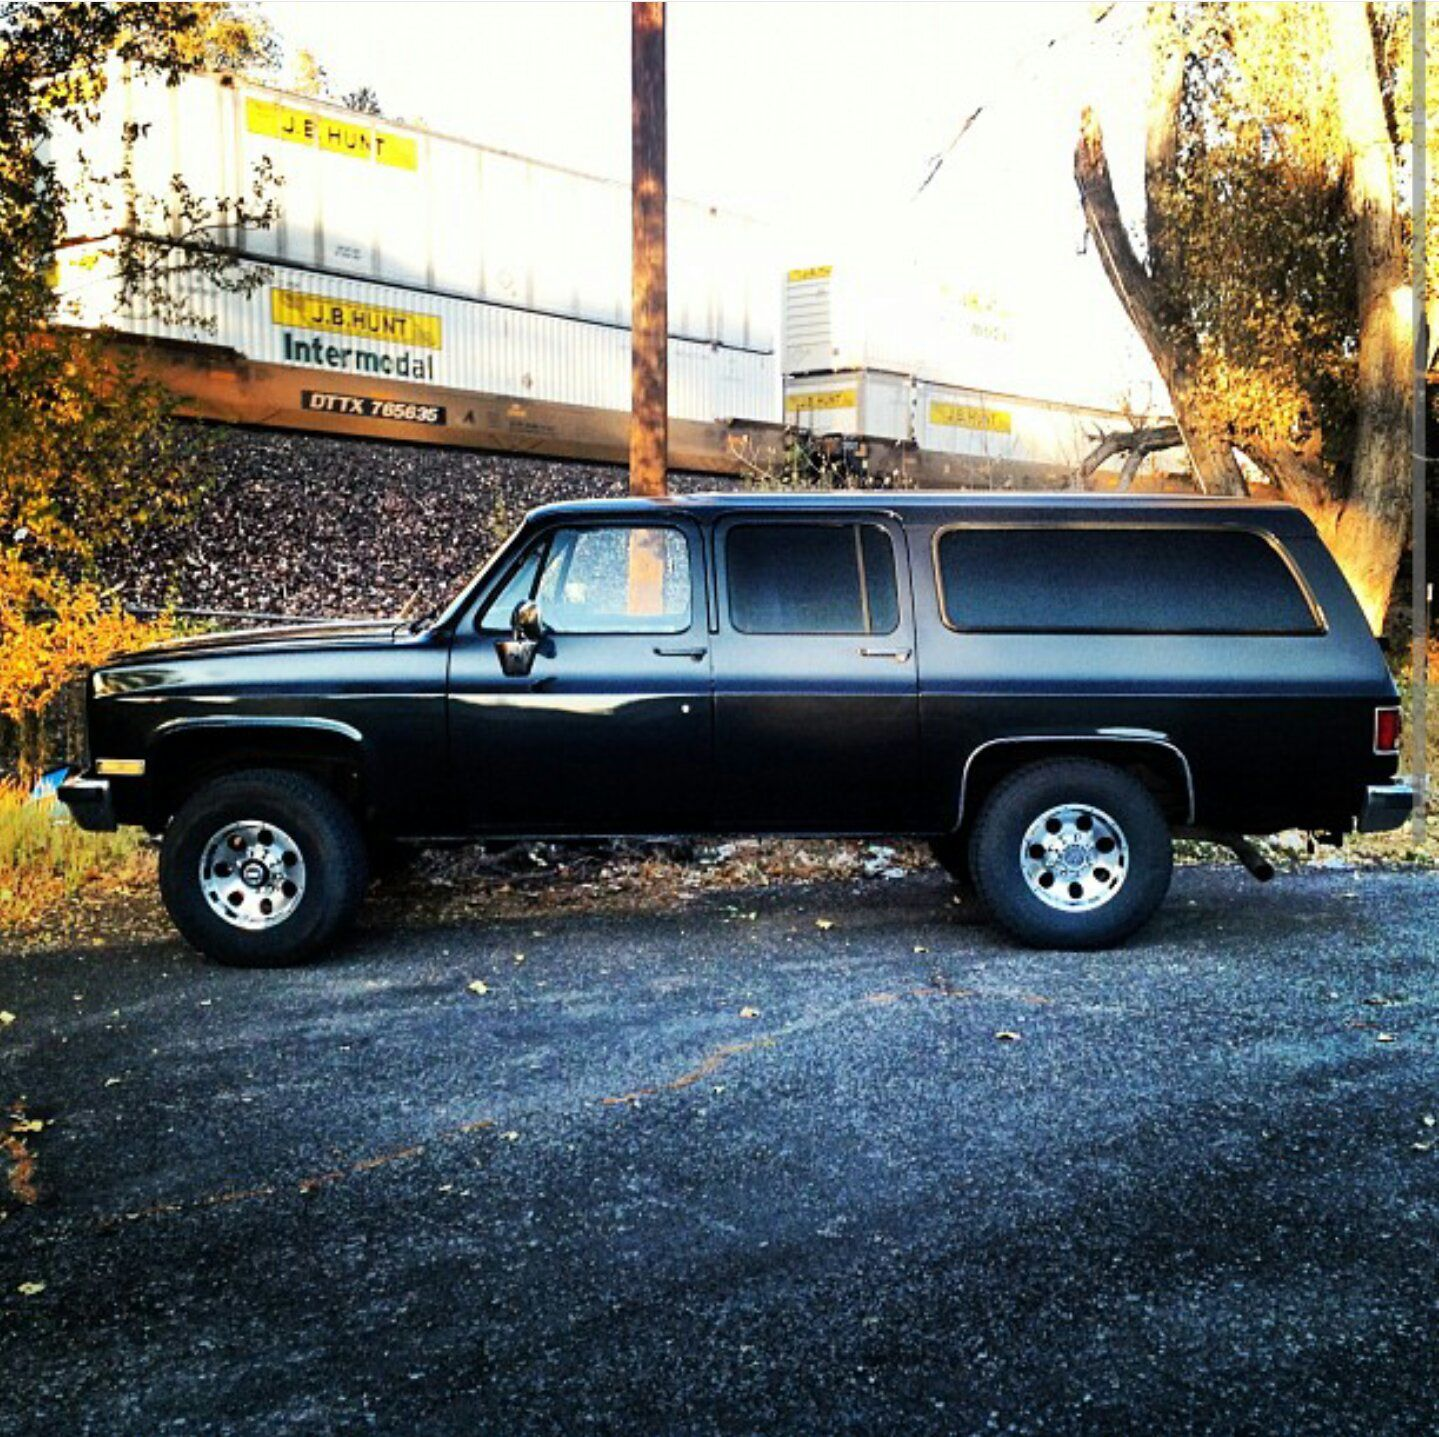 Image Result For 1990 Chevy Suburban Chevy Suburban Chevrolet